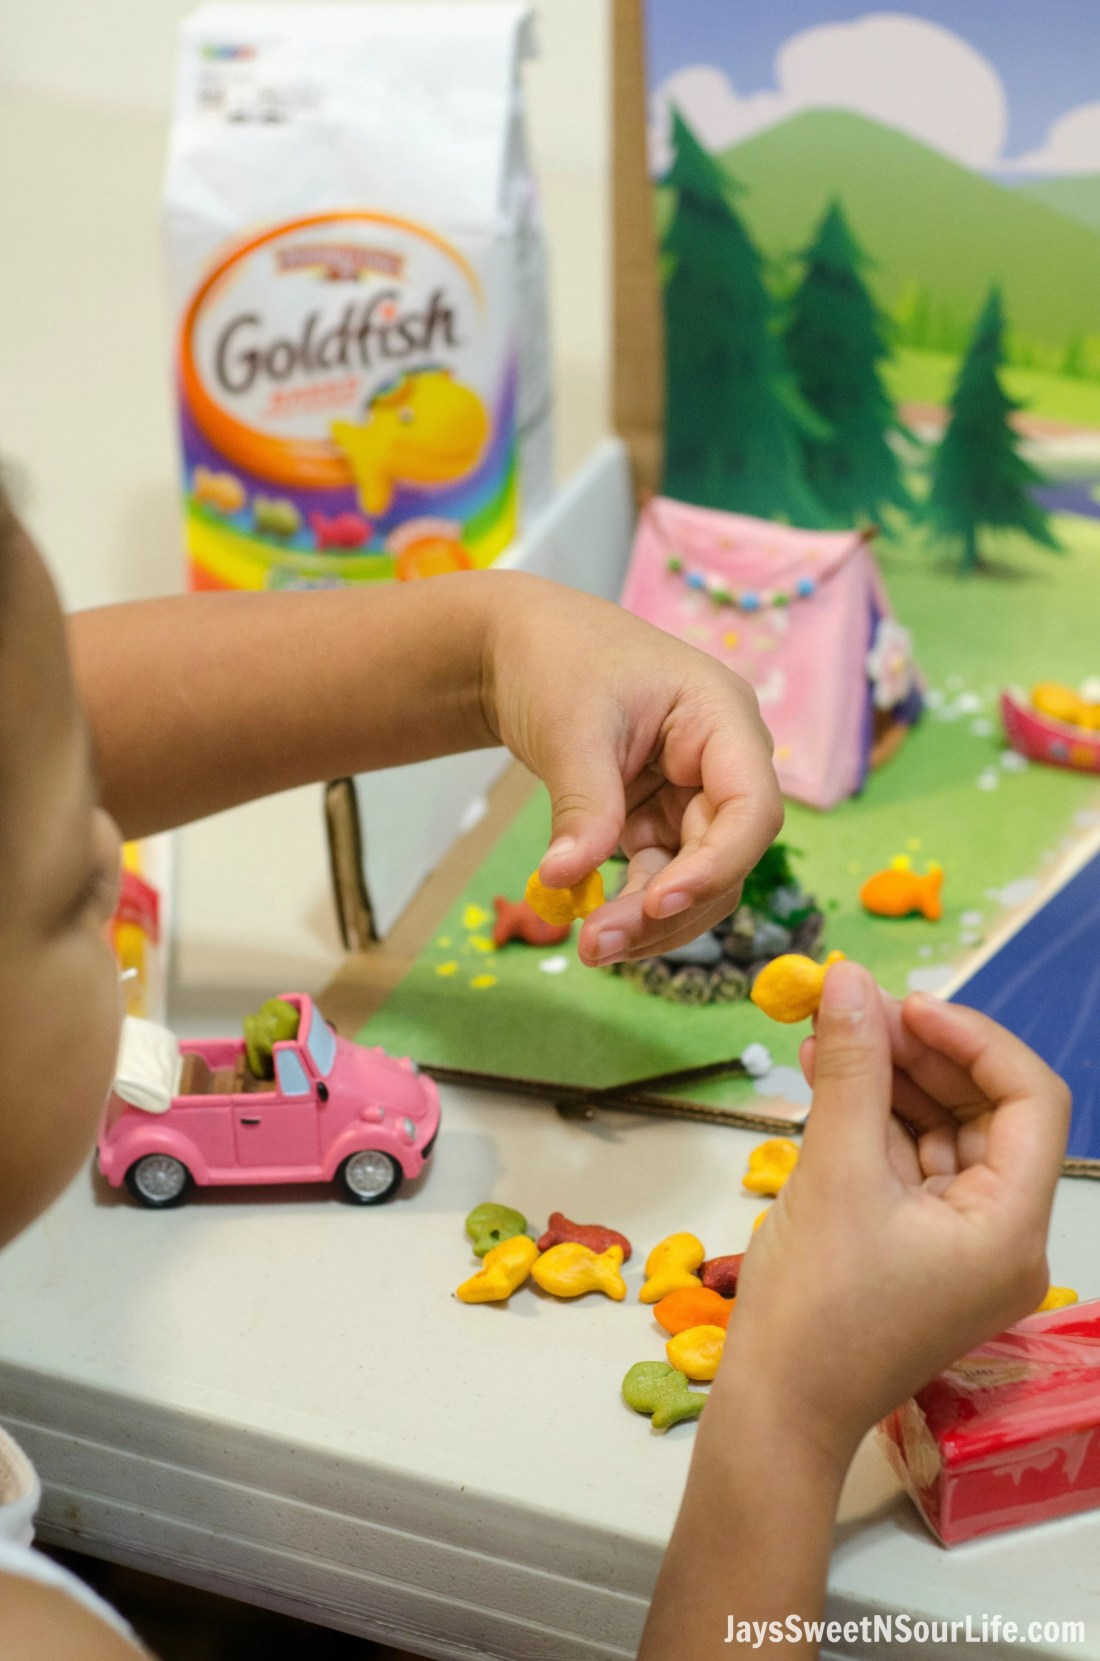 Creating Goldfish Tales with your kids are a fun way to spend your afternoons together. Create a stop motion video and share your families story. Make sure you don't let the kids eat the whole cast of the film.